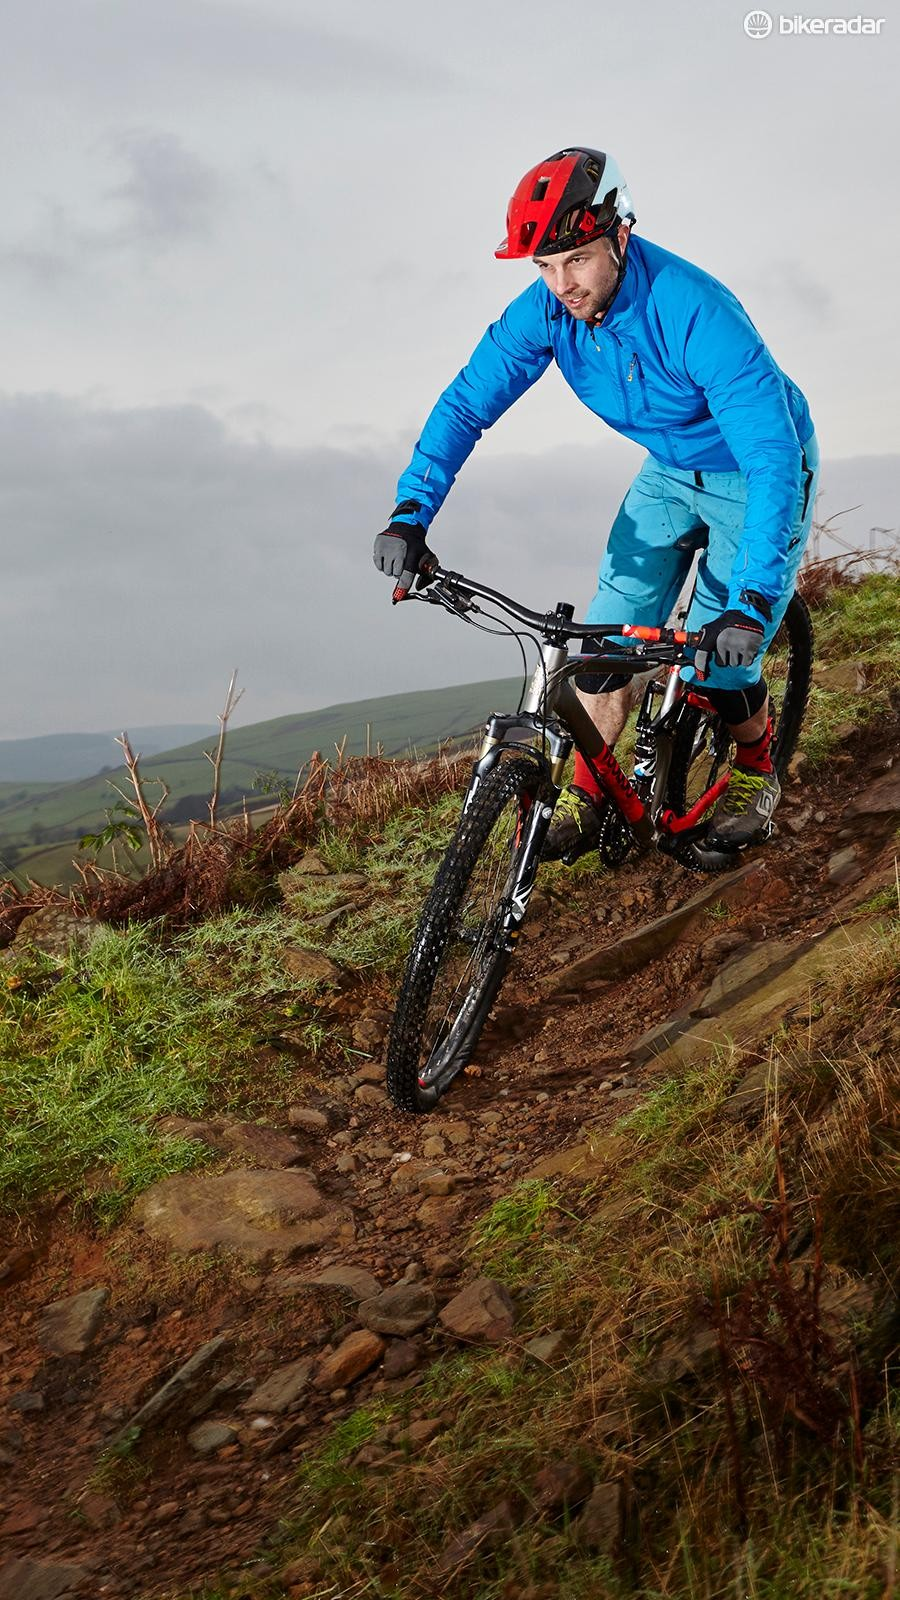 The wide 760mm bar and short stem sync with the relaxed head angle and long front end for maximum crazy-trail confidence